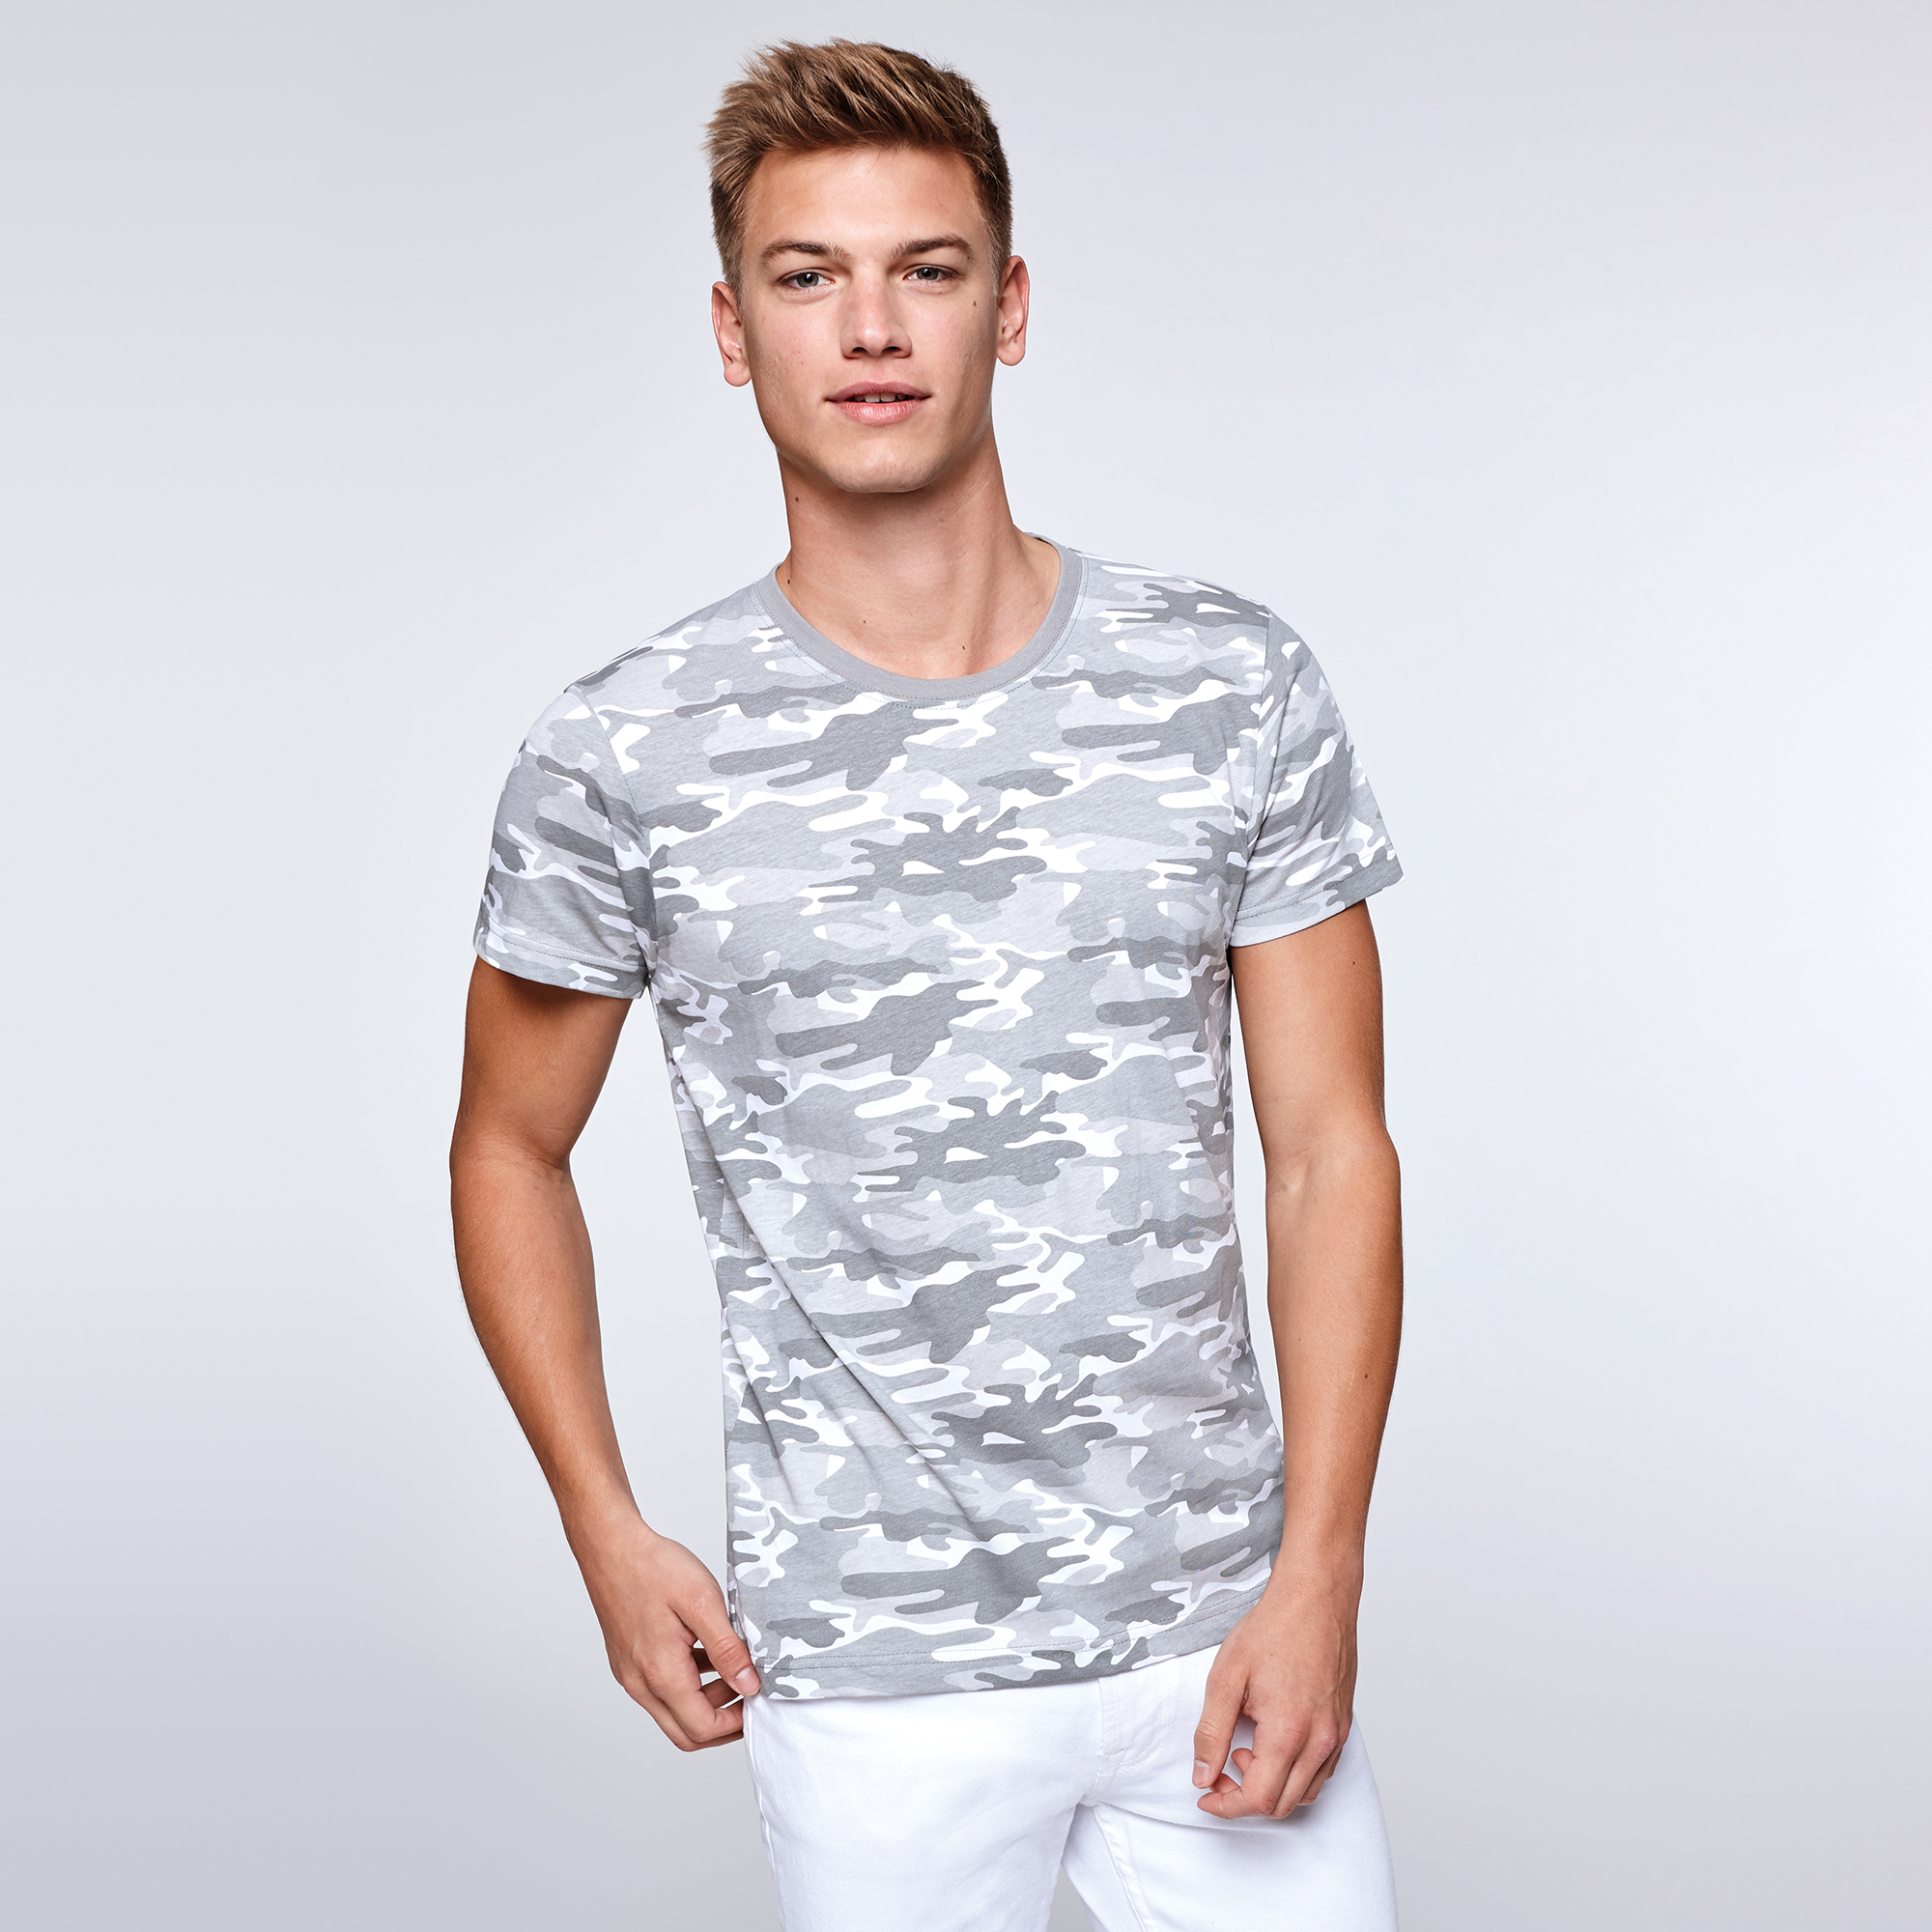 T Shirt Promotional Marlo Cf1033 Roly